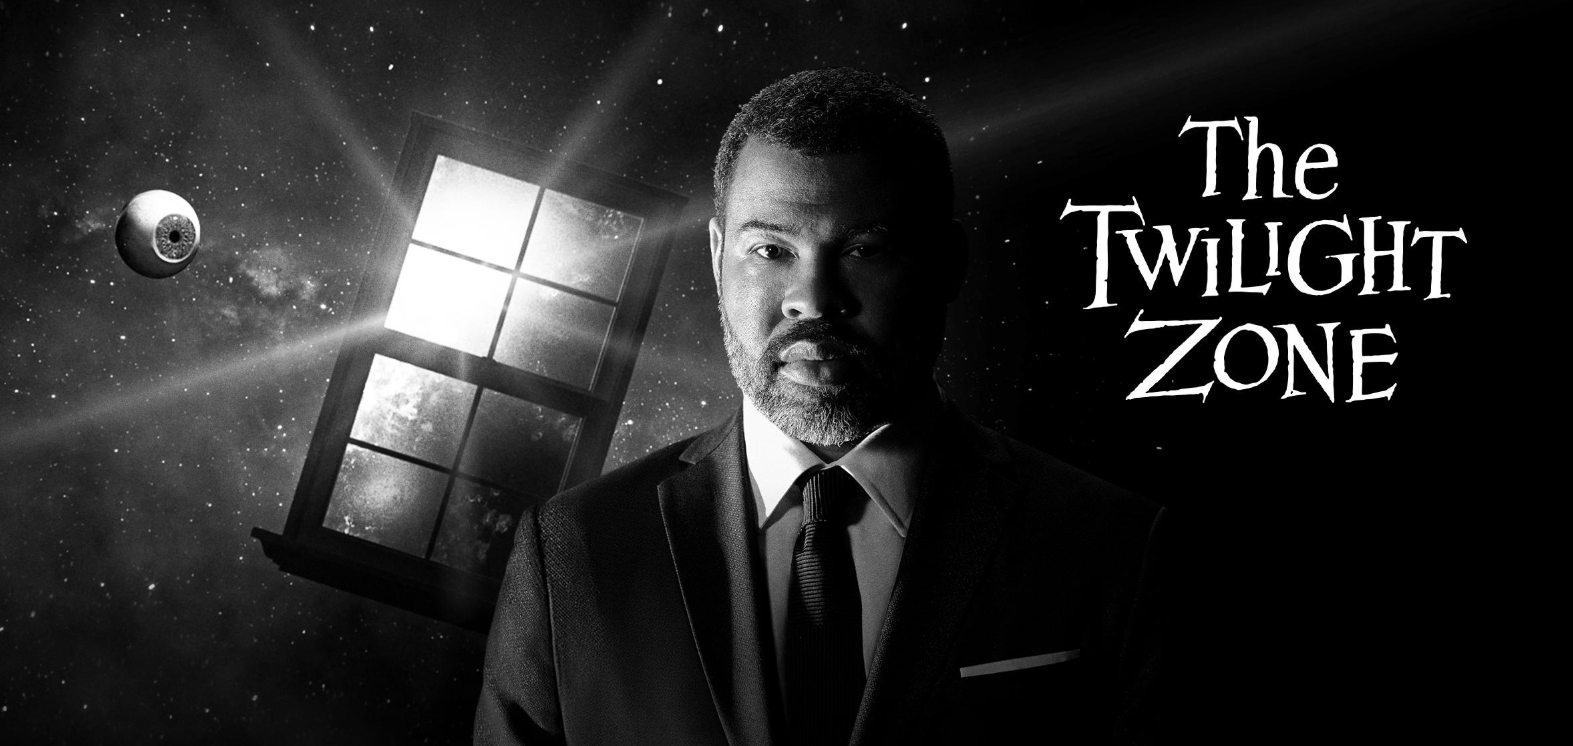 'The Twilight Zone' set to begin filming in Ashcroft